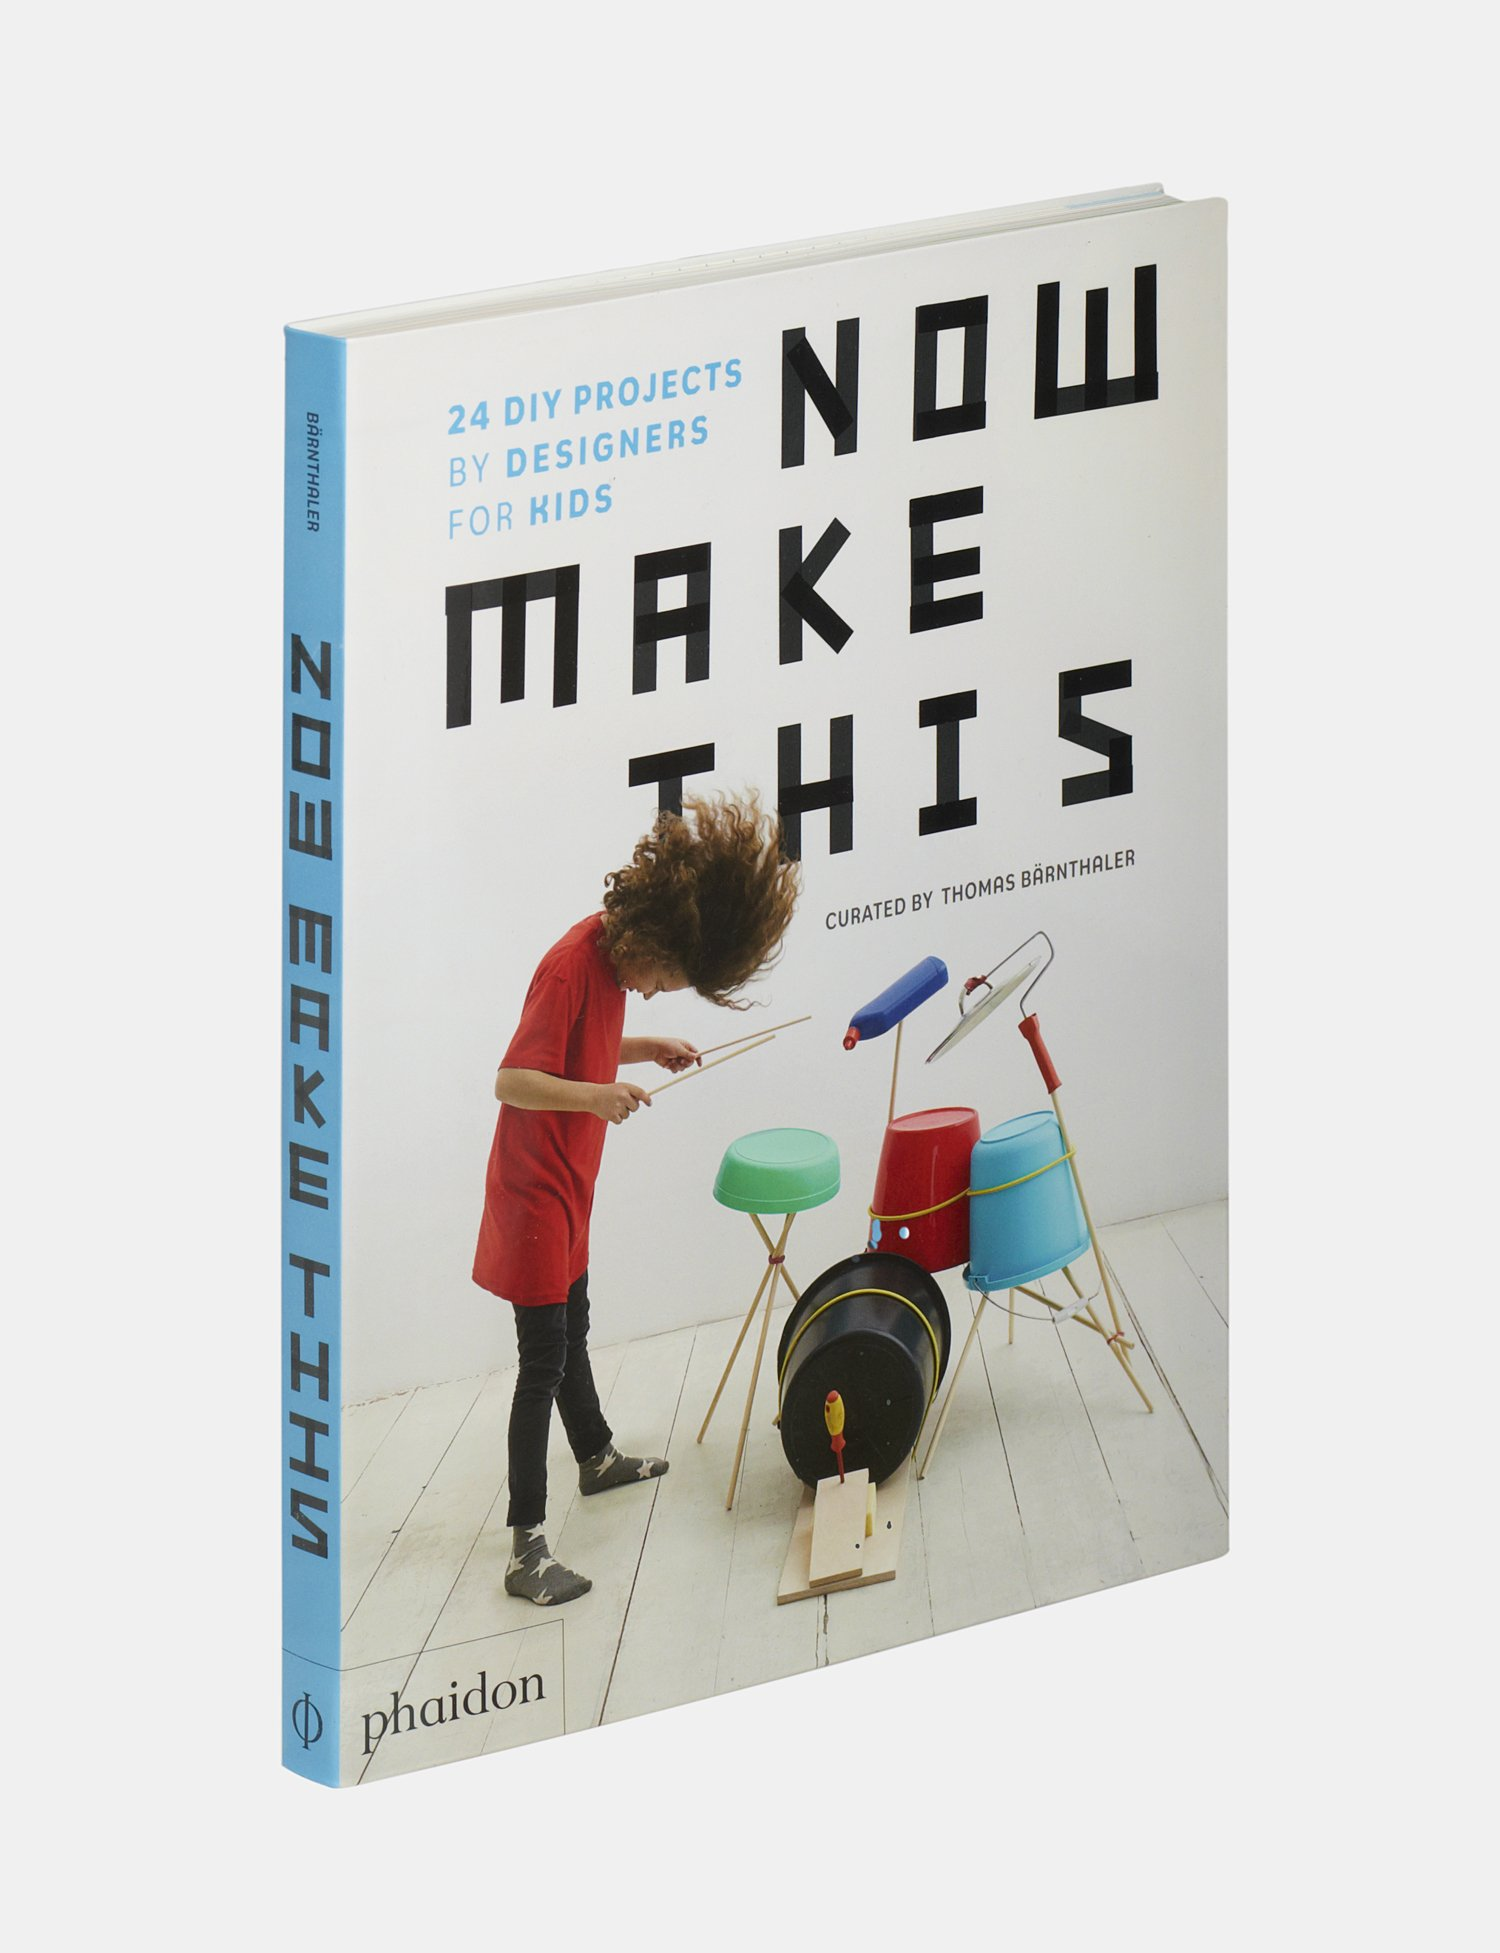 Now make this 24 diy projects by designers for kids thomas b now make this 24 diy projects by designers for kids thomas brnthaler 9780714875309 amazon books solutioingenieria Choice Image